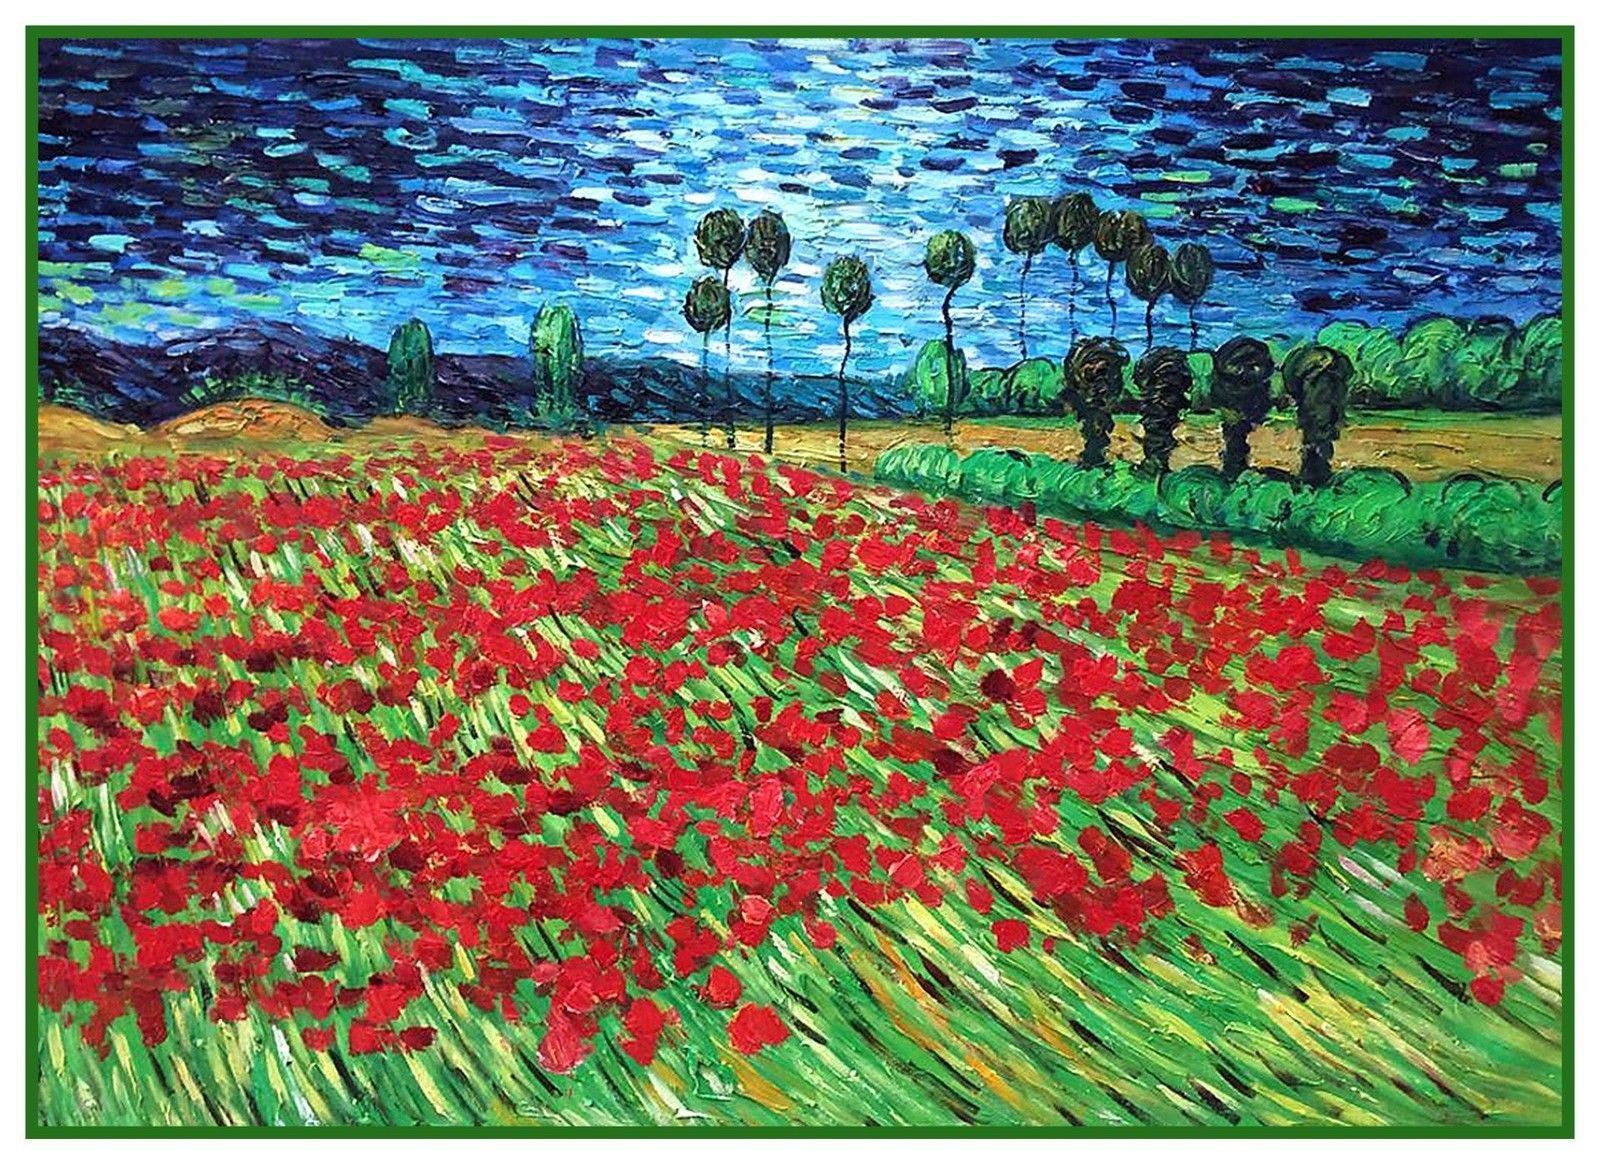 Field Of Poppy Flowers By Vincent Van Gogh Counted Cross Stitch Or